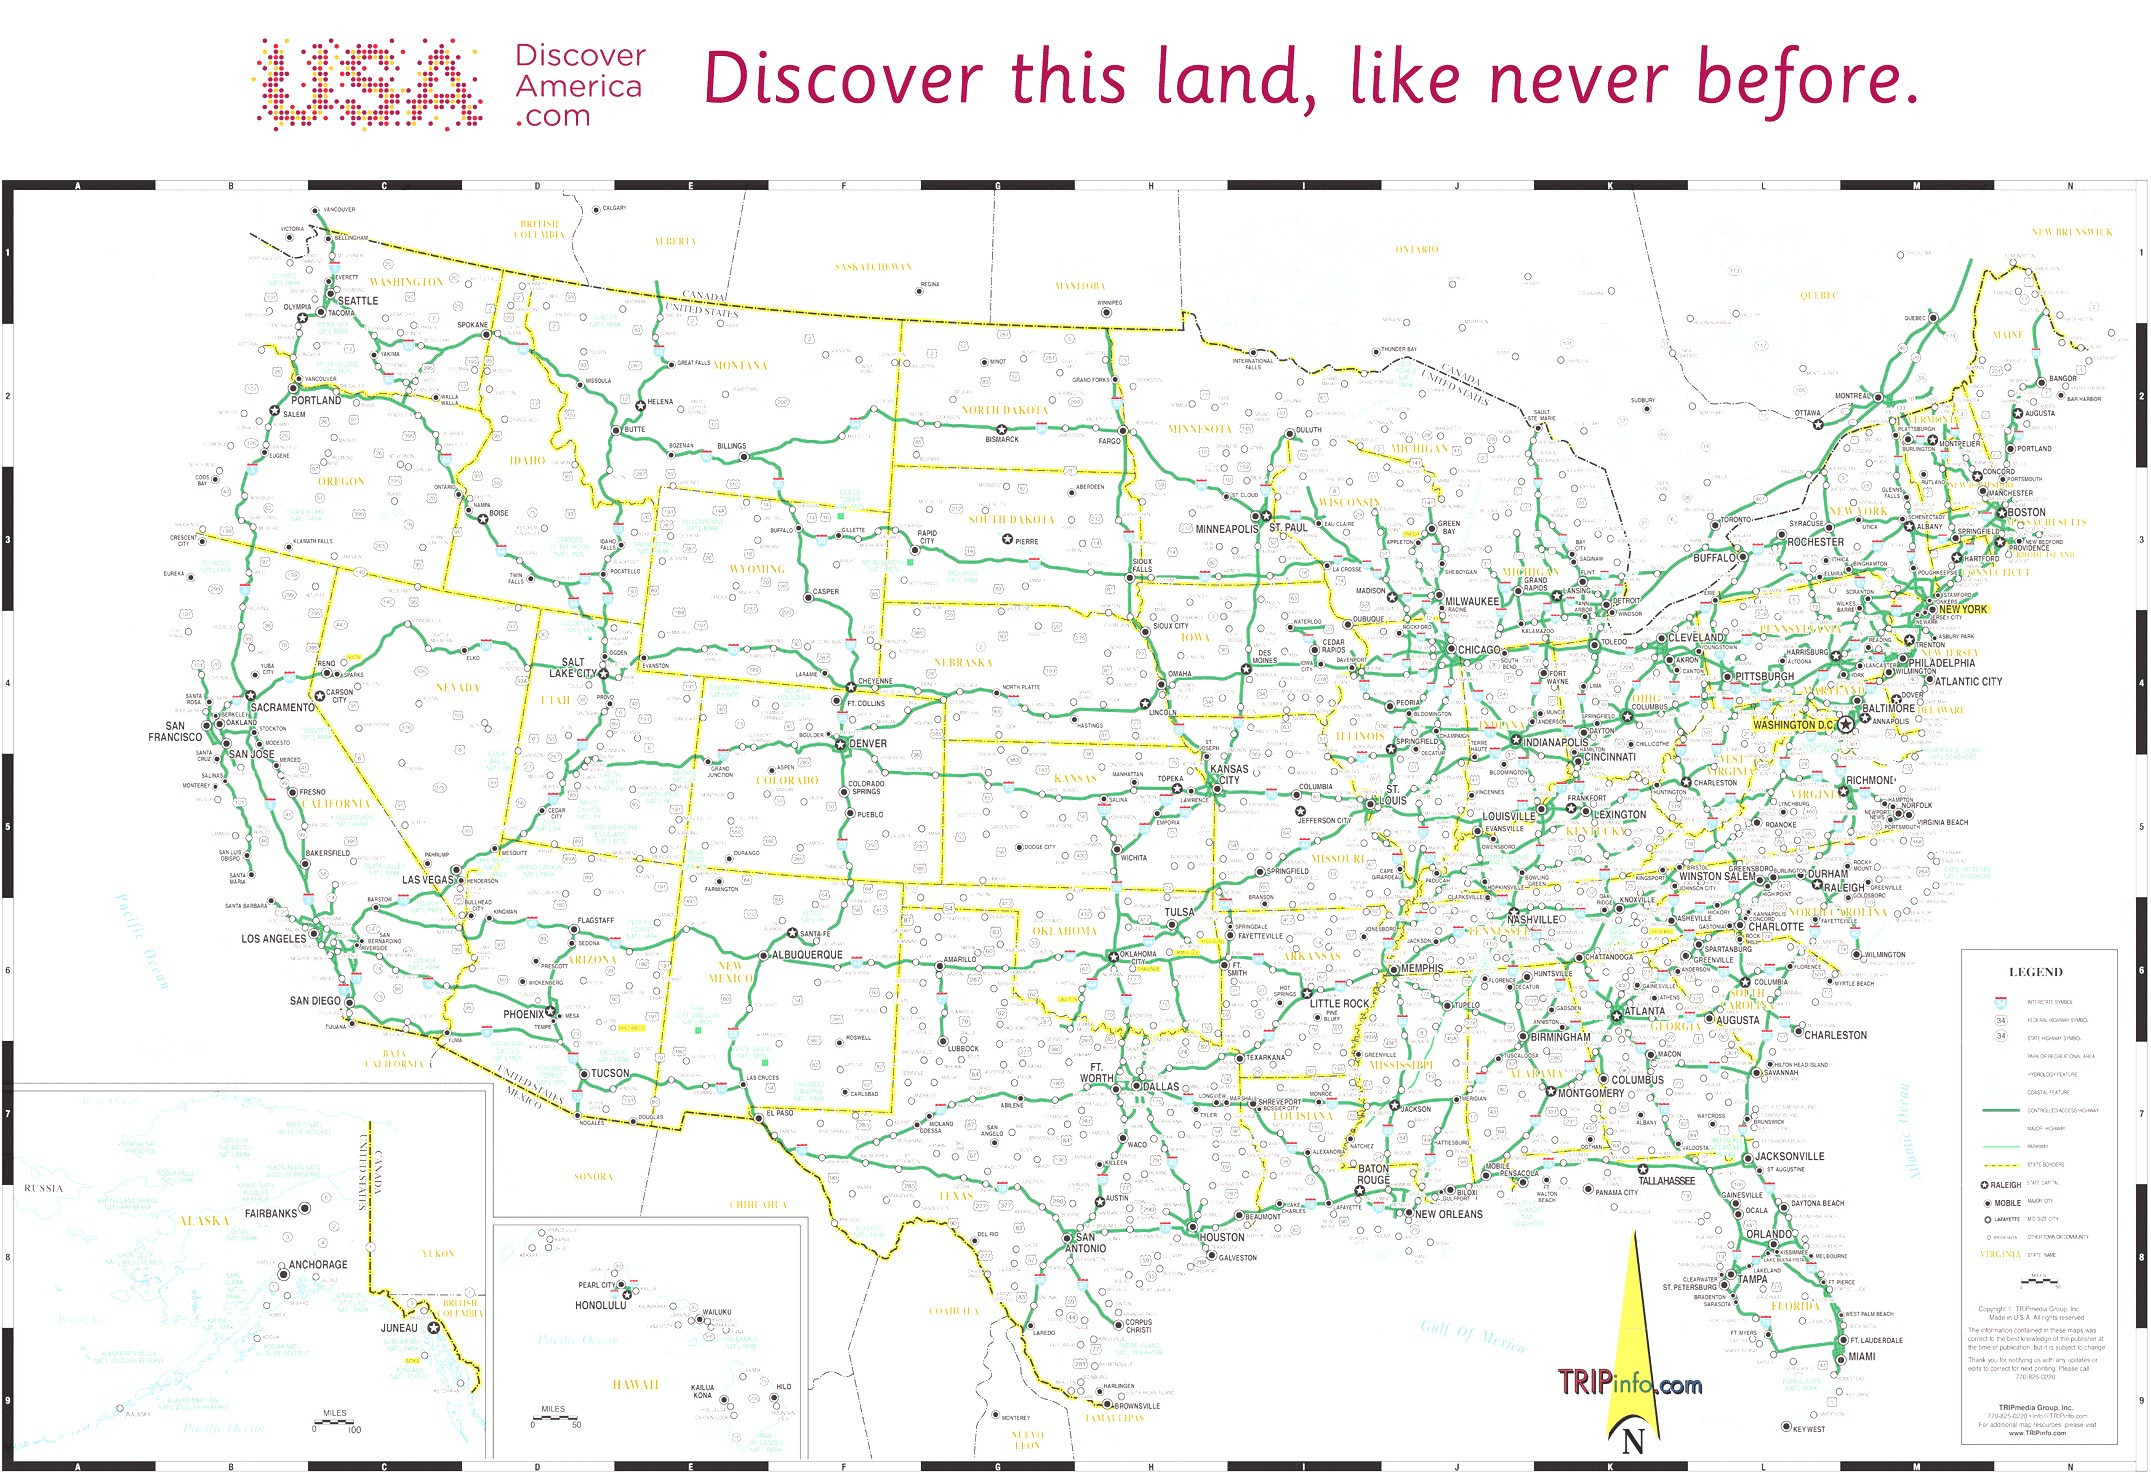 10 Awesome Printable Road Map Of the Eastern United States